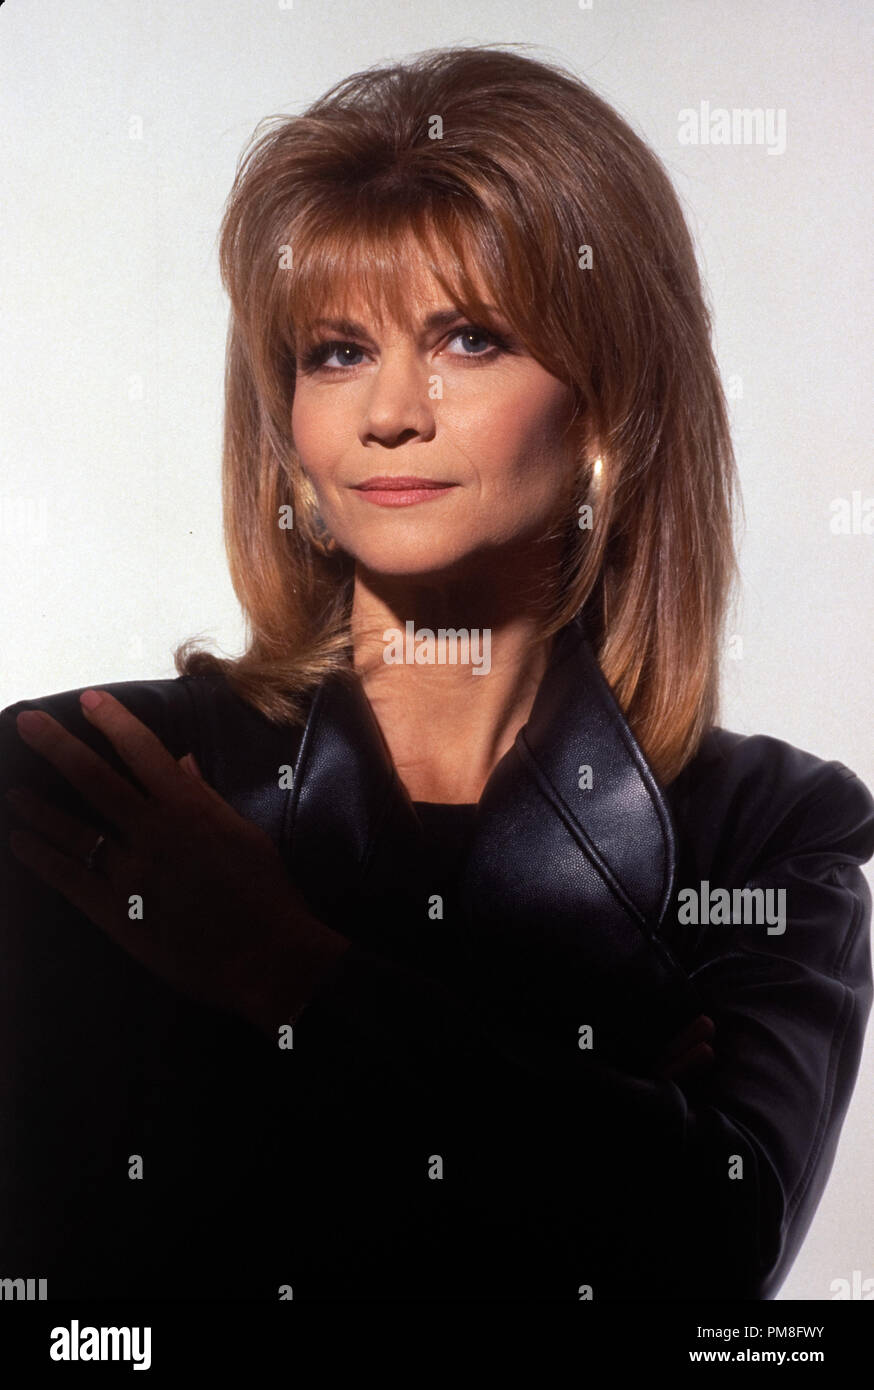 Film still / publicity still of Markie Post 1993   File Reference # 31371002THA  For Editorial Use Only All Rights Reserved - Stock Image